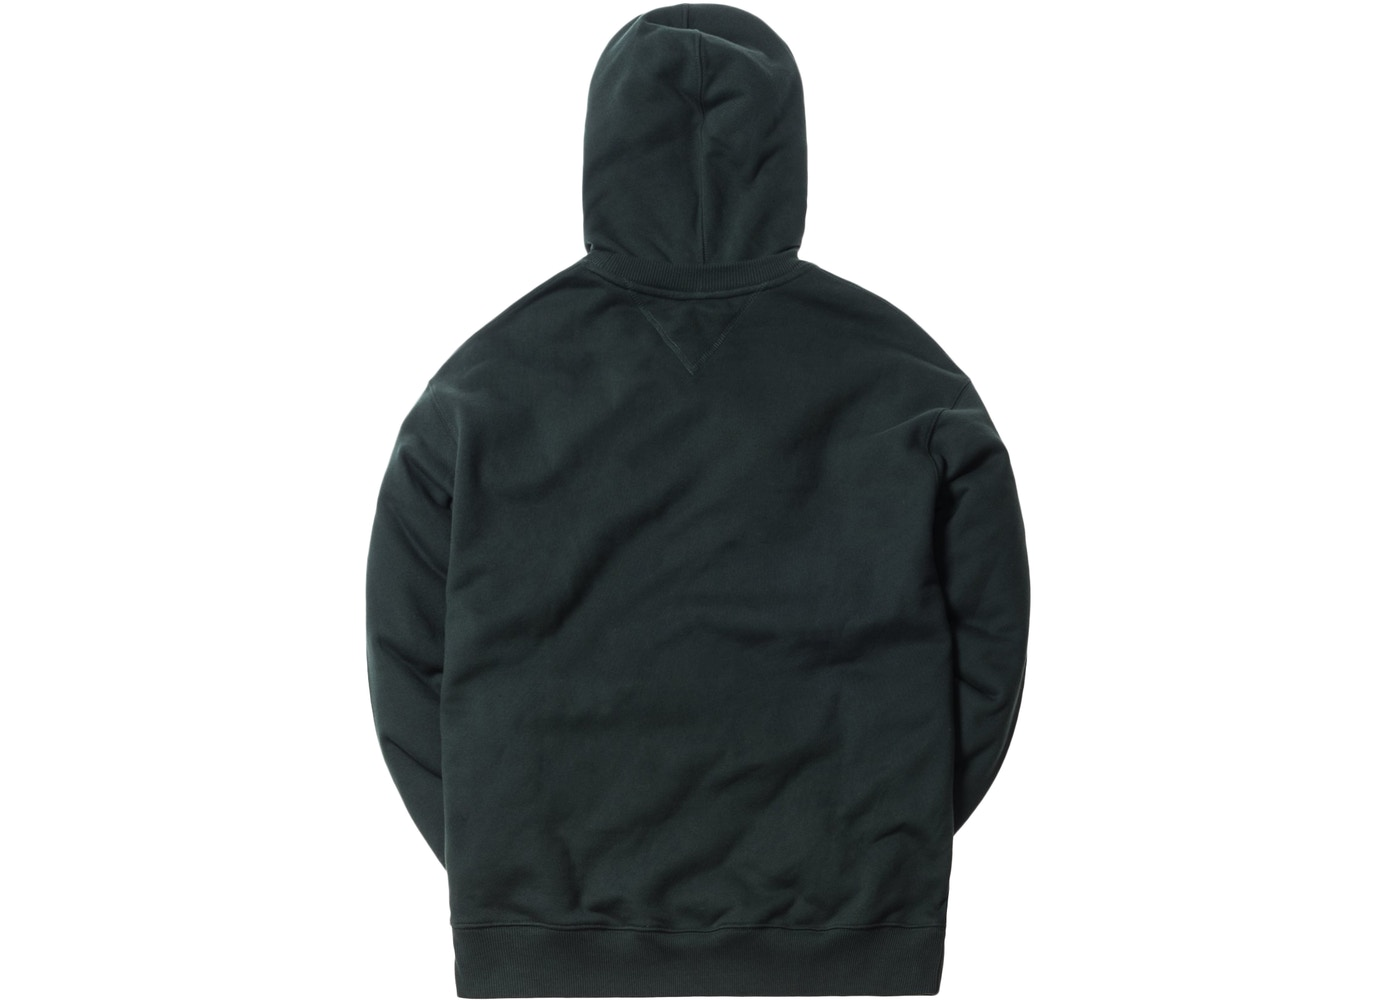 a2c67fd1 Kith x Tommy Hilfiger Crest Hoodie Forest - FW18